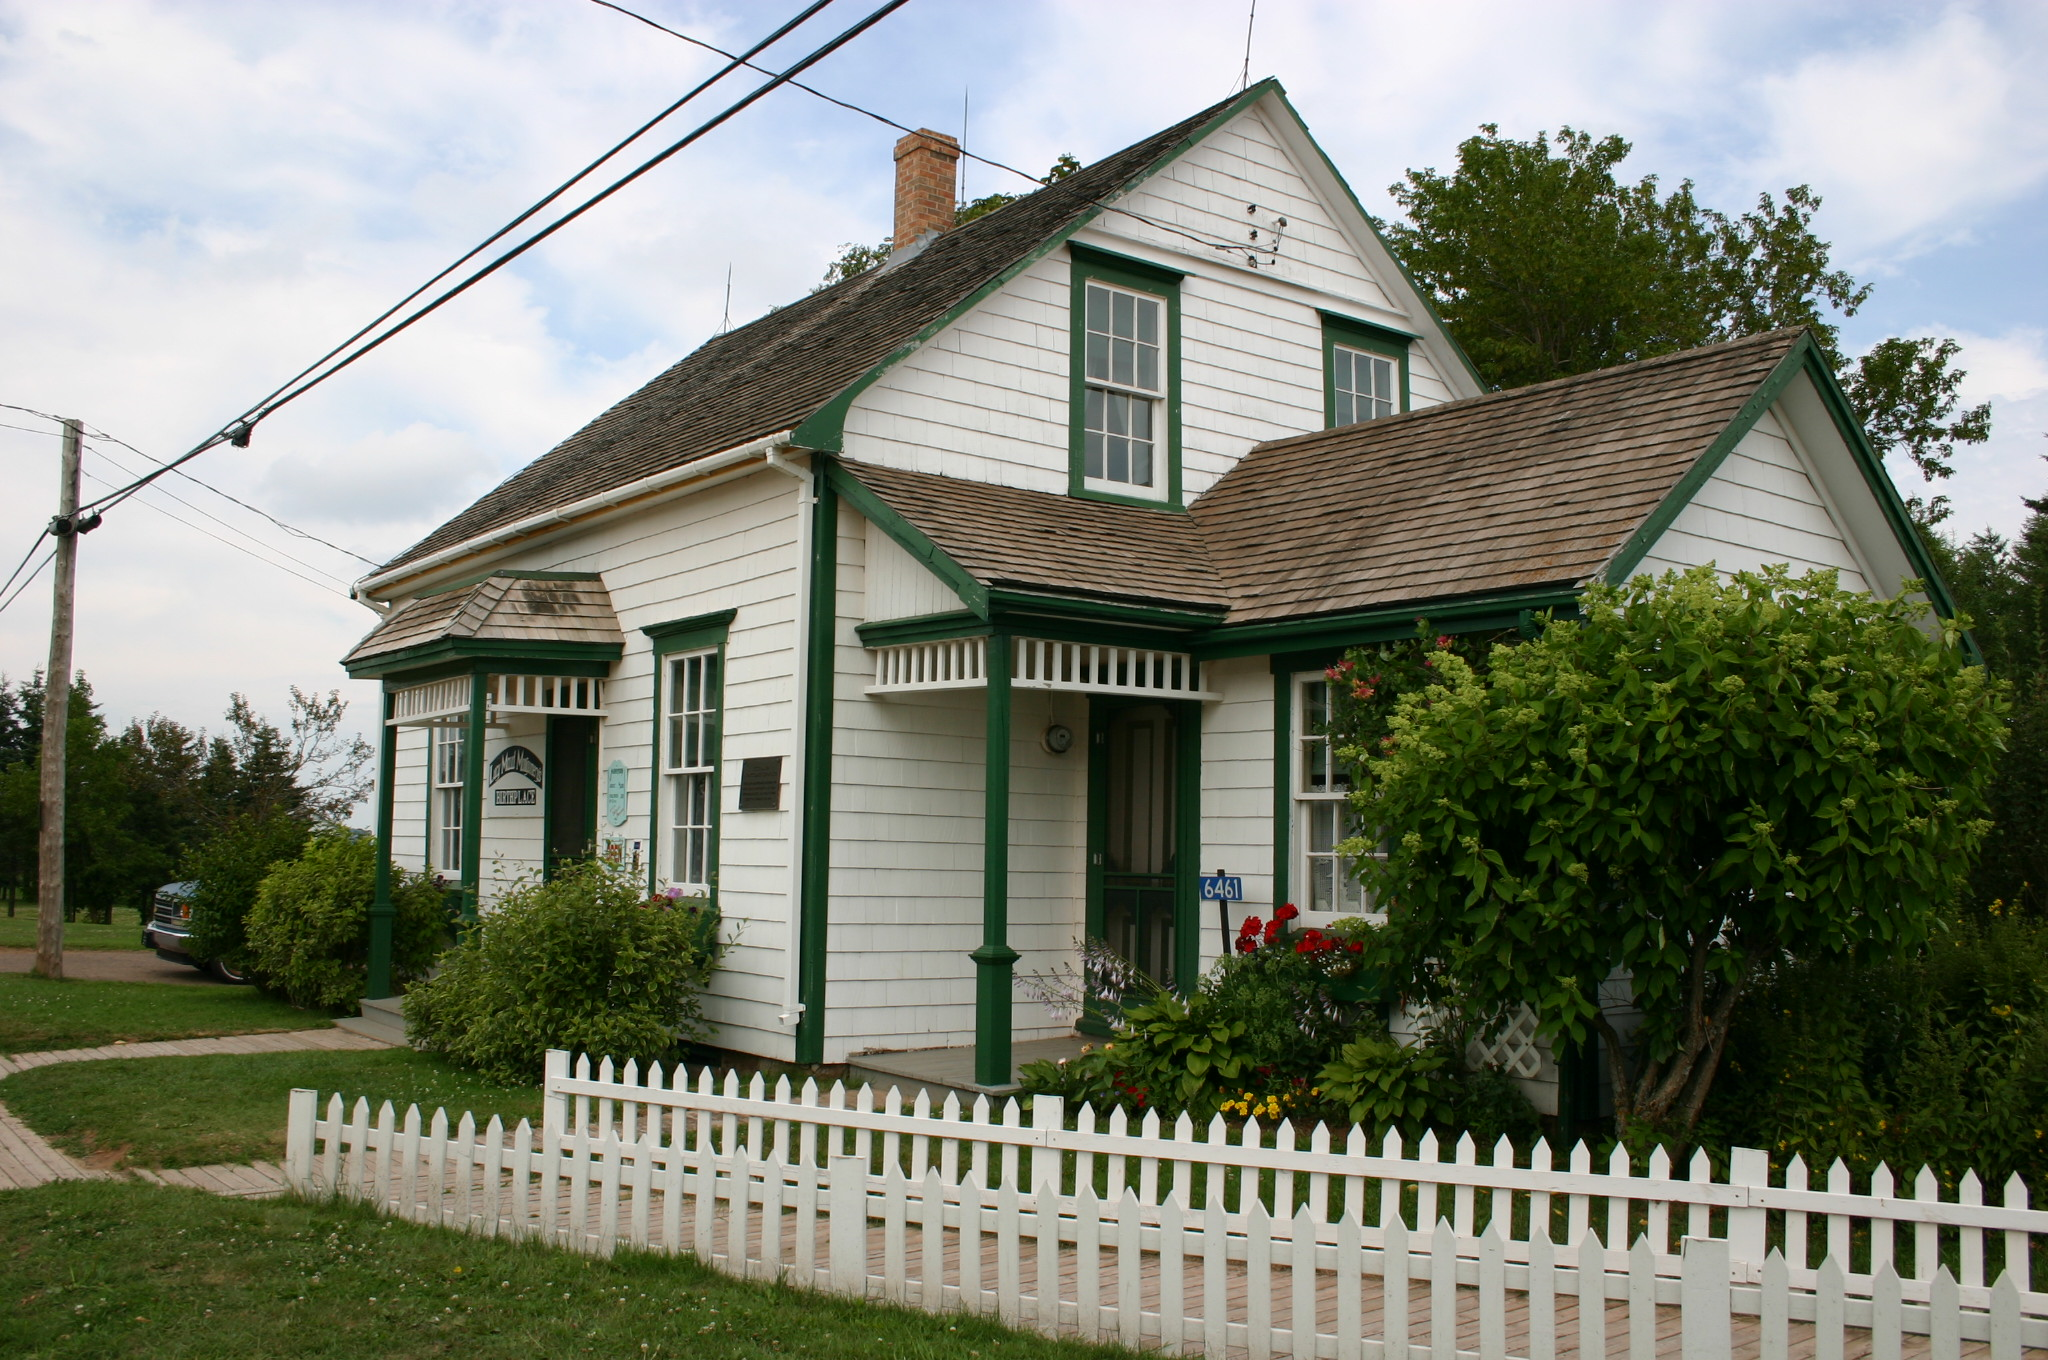 Birthplace of Lucy Maud Montgomery